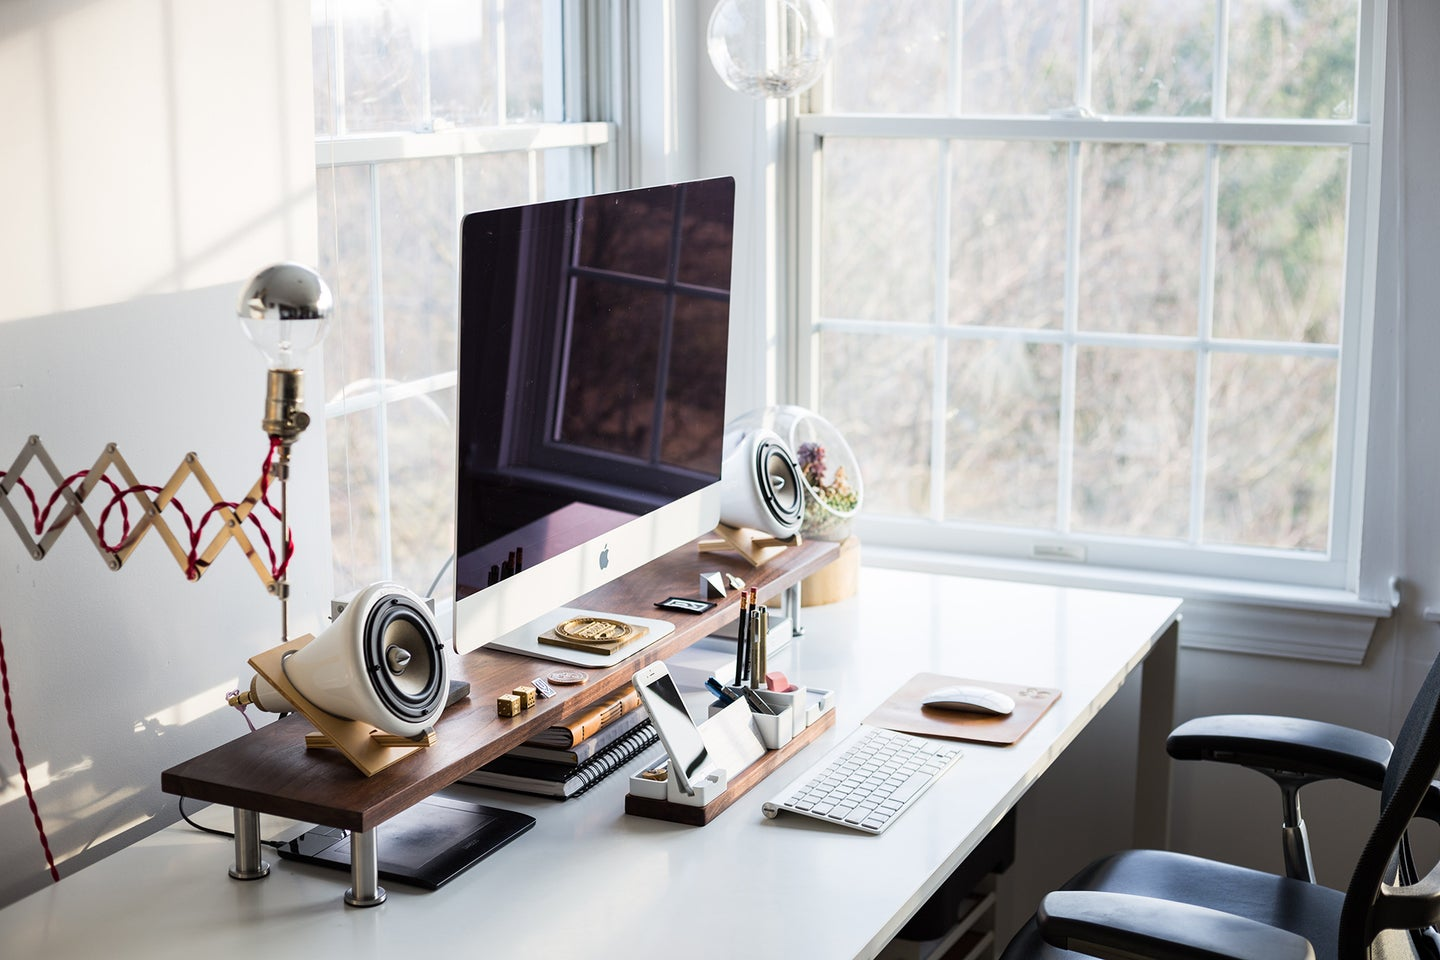 black desk chair in front of a desk with a computer, speakers, keyboard, phone, and mouse